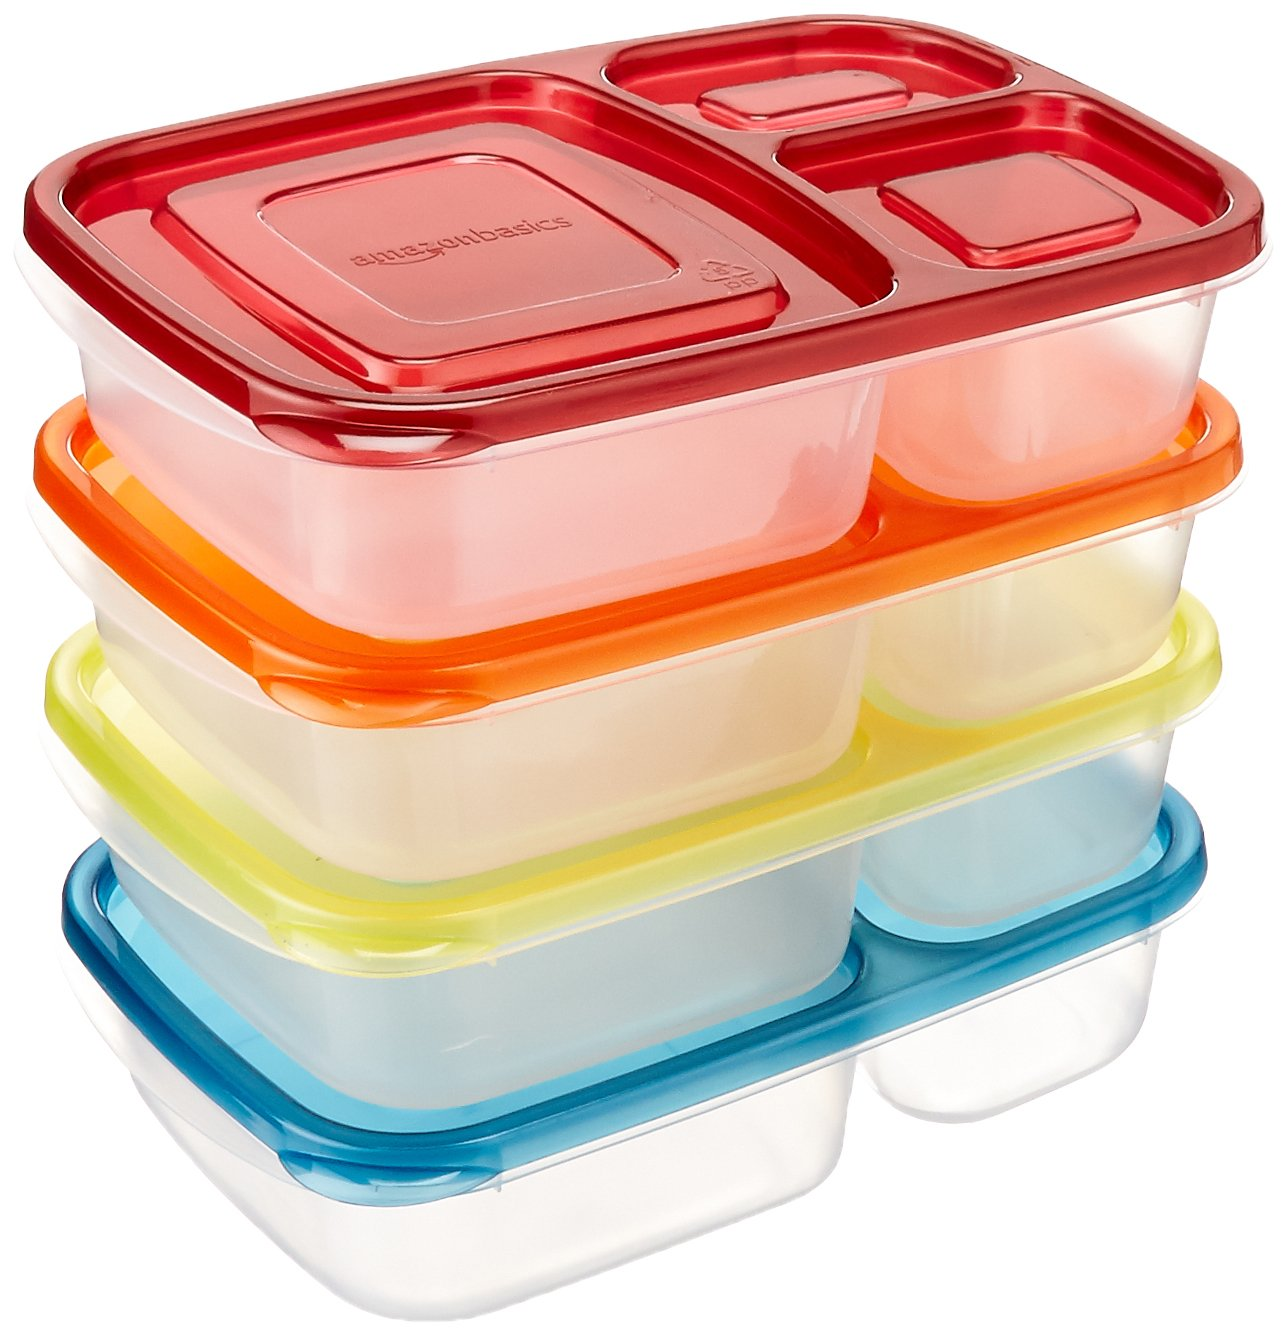 AmazonBasics Bento Lunch Box Containers - Set of 4 by AmazonBasics